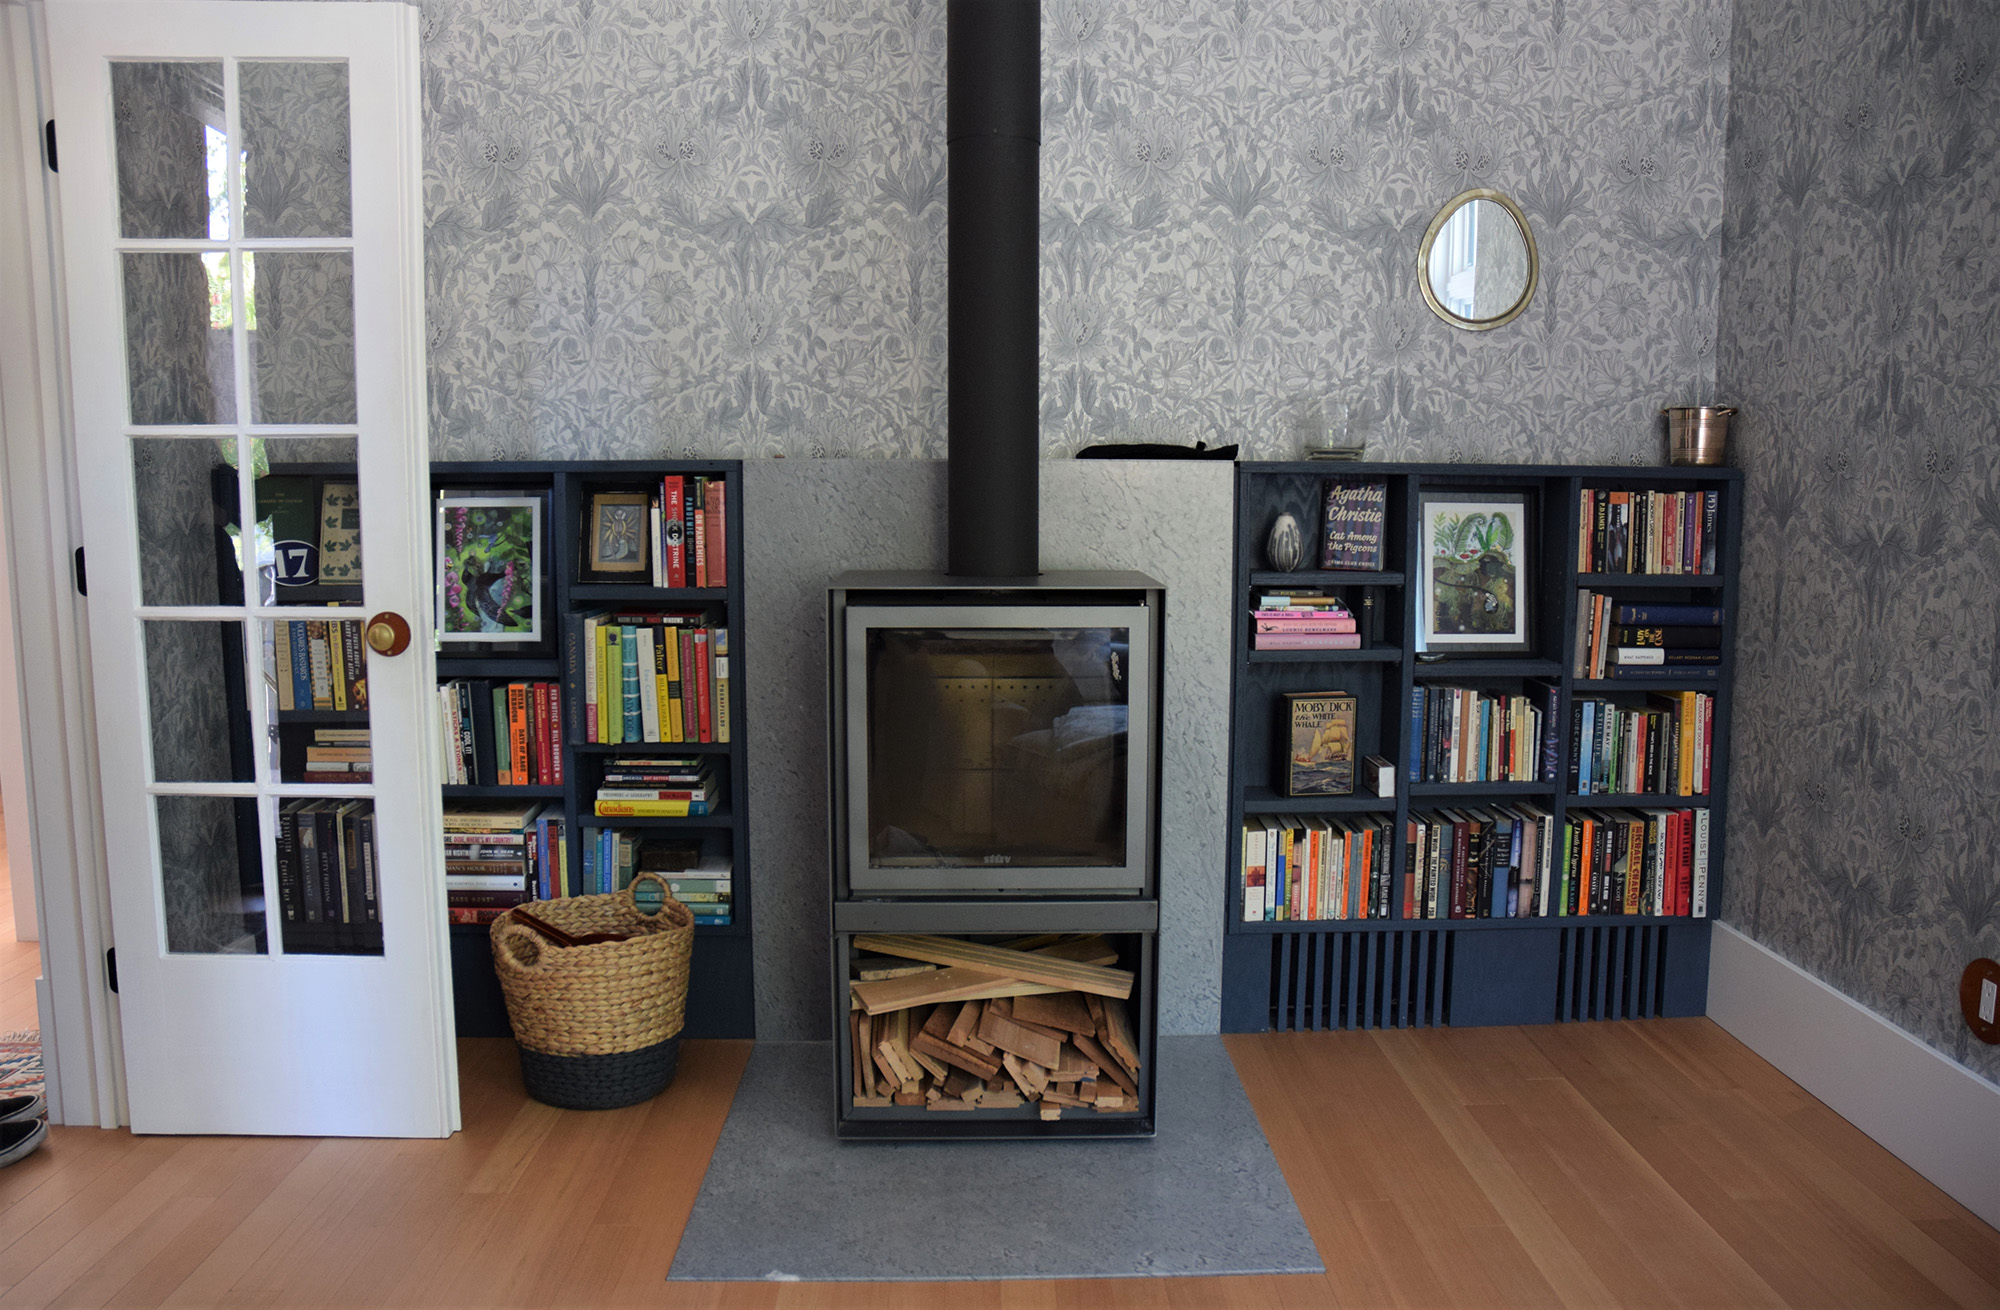 A living room with a wood-burning stove, bookshelves, and historic wallpaper.